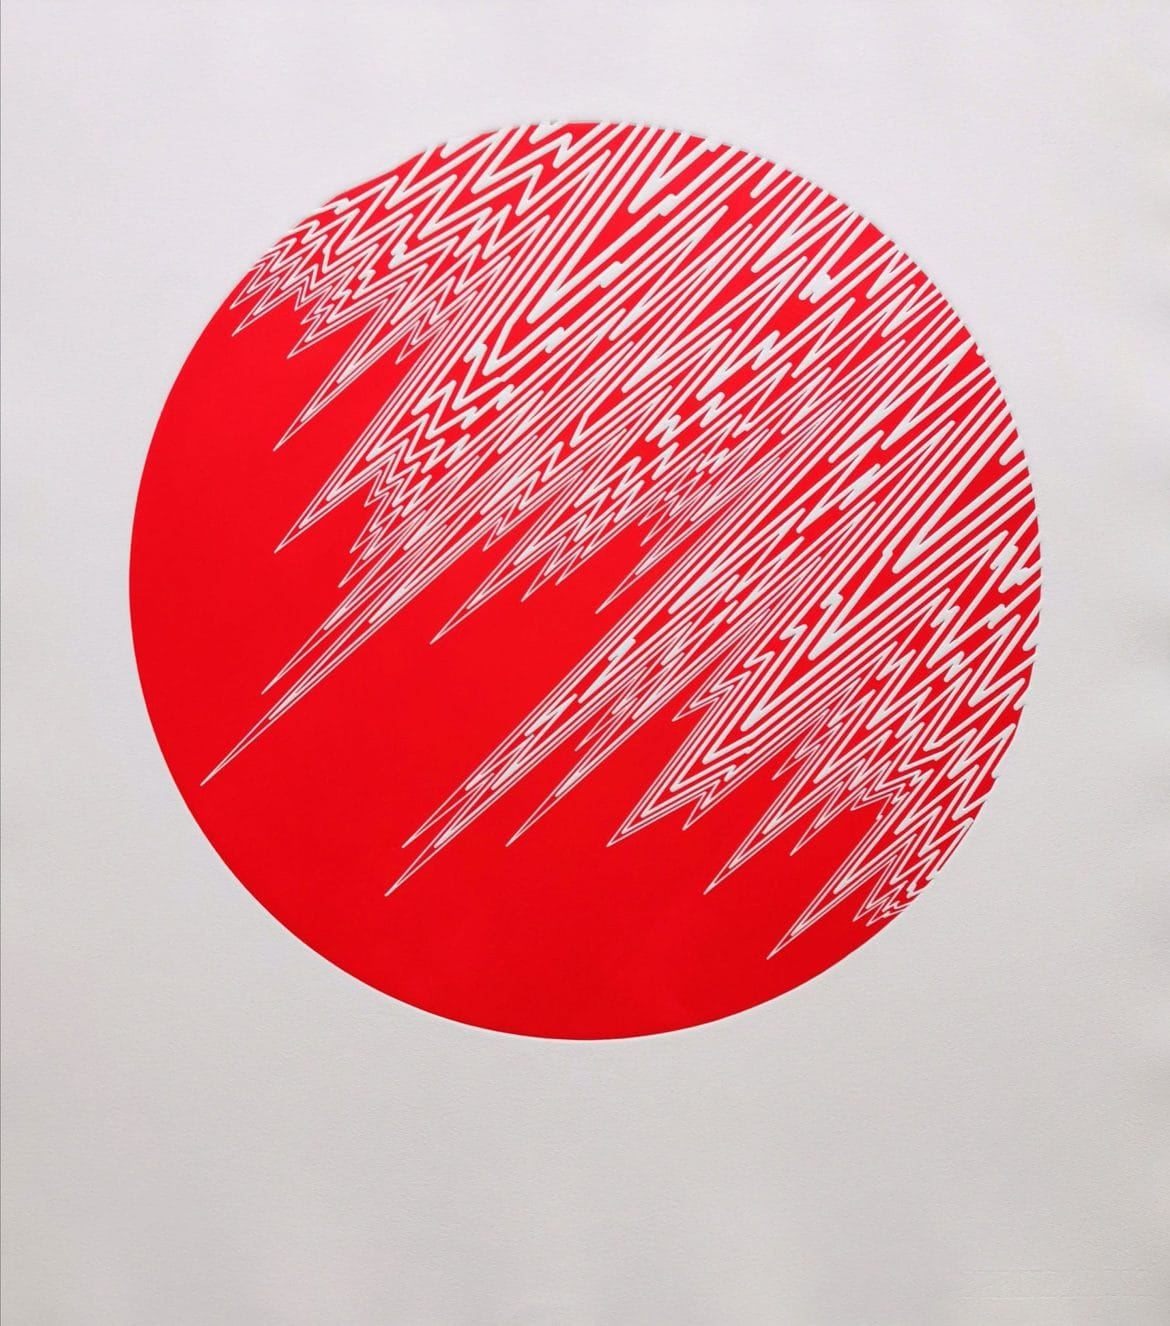 Pulse (Scarlet Red), woodblock print, 300gsm hanhemuhle deckled edge etching paper, edition of 5, 79cm x 69.5cm